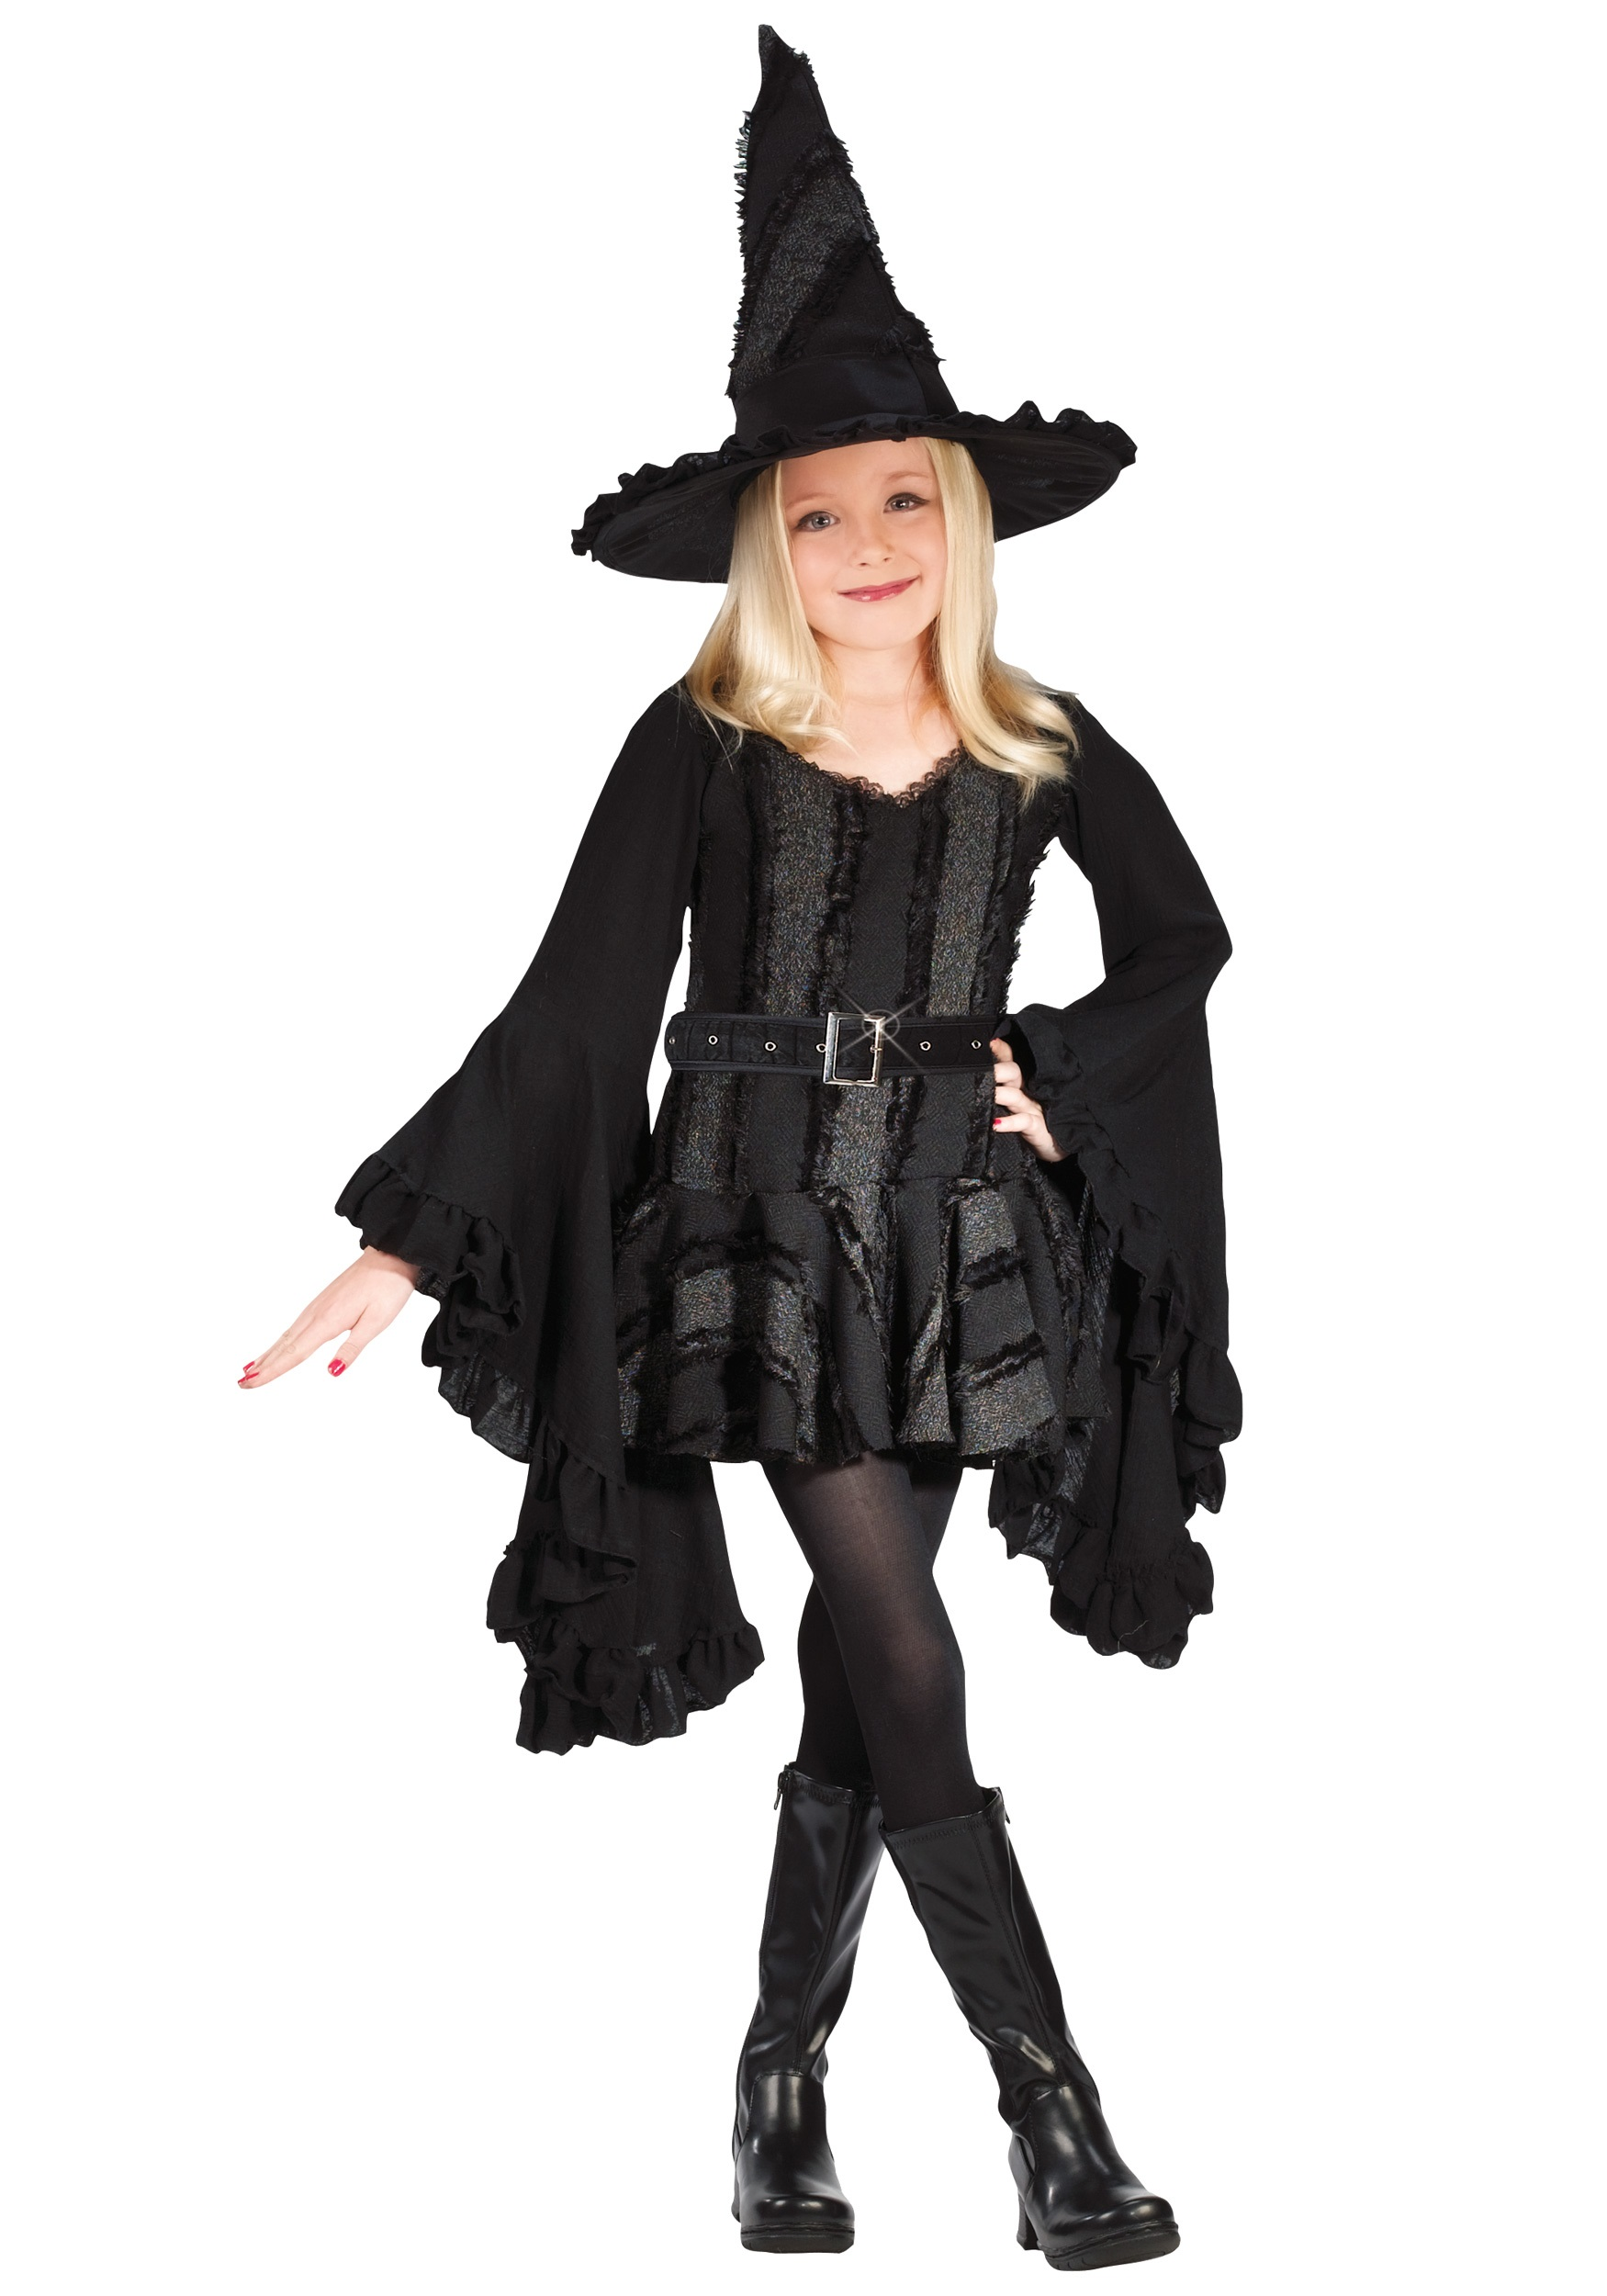 Kids Wicked Witch of the West Costume  sc 1 st  Halloween Costumes & Black Witch Costume for Girls